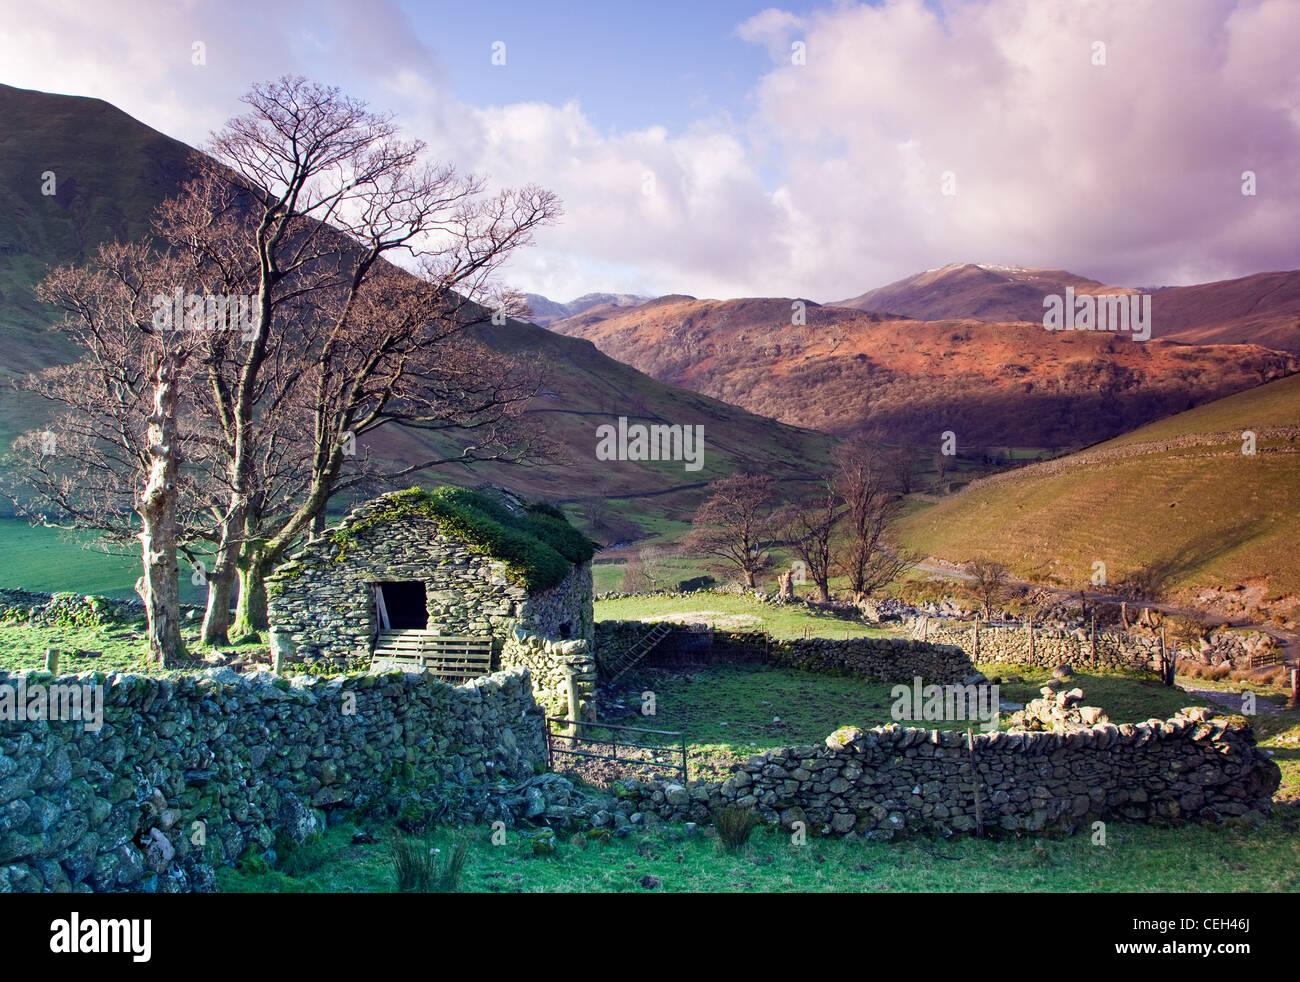 Derelict stone barn, on path down from Hayswater approaching Hartsop Vollage, Hartsop, Patterdale area, Lake District - Stock Image